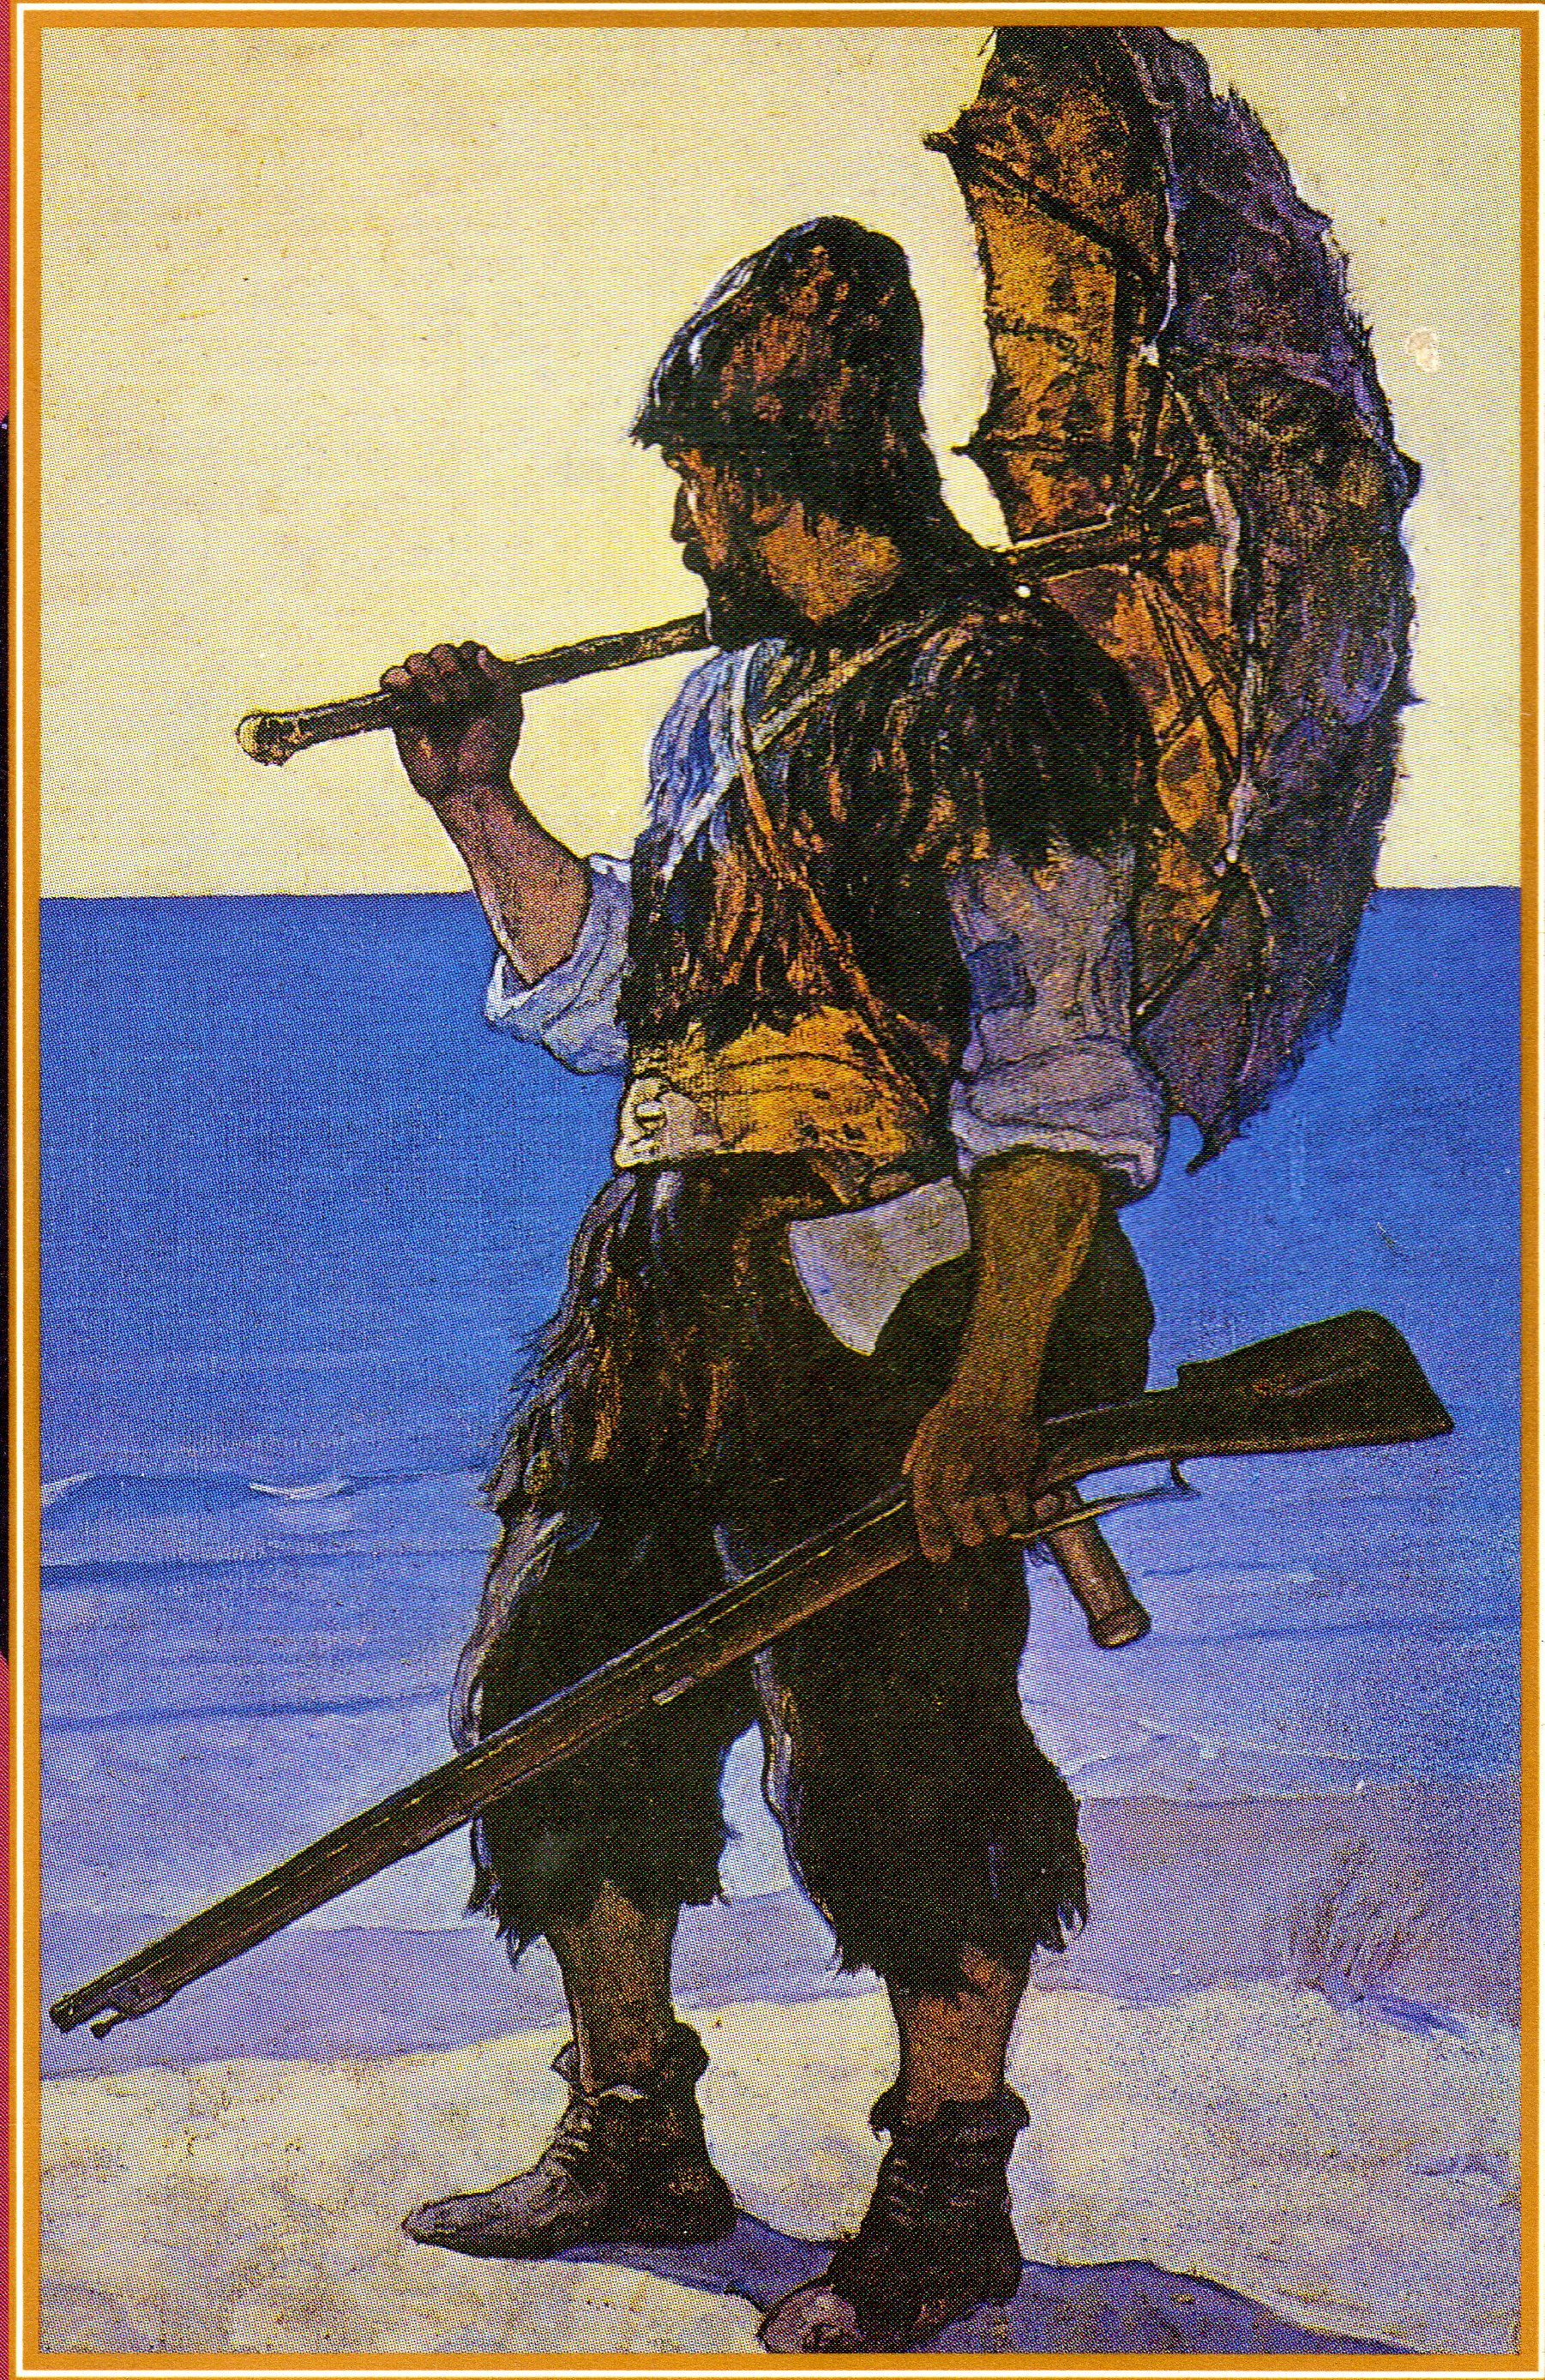 Robinson crusoe illustration 1920 n c wyeth - Robinson crusoe style ...